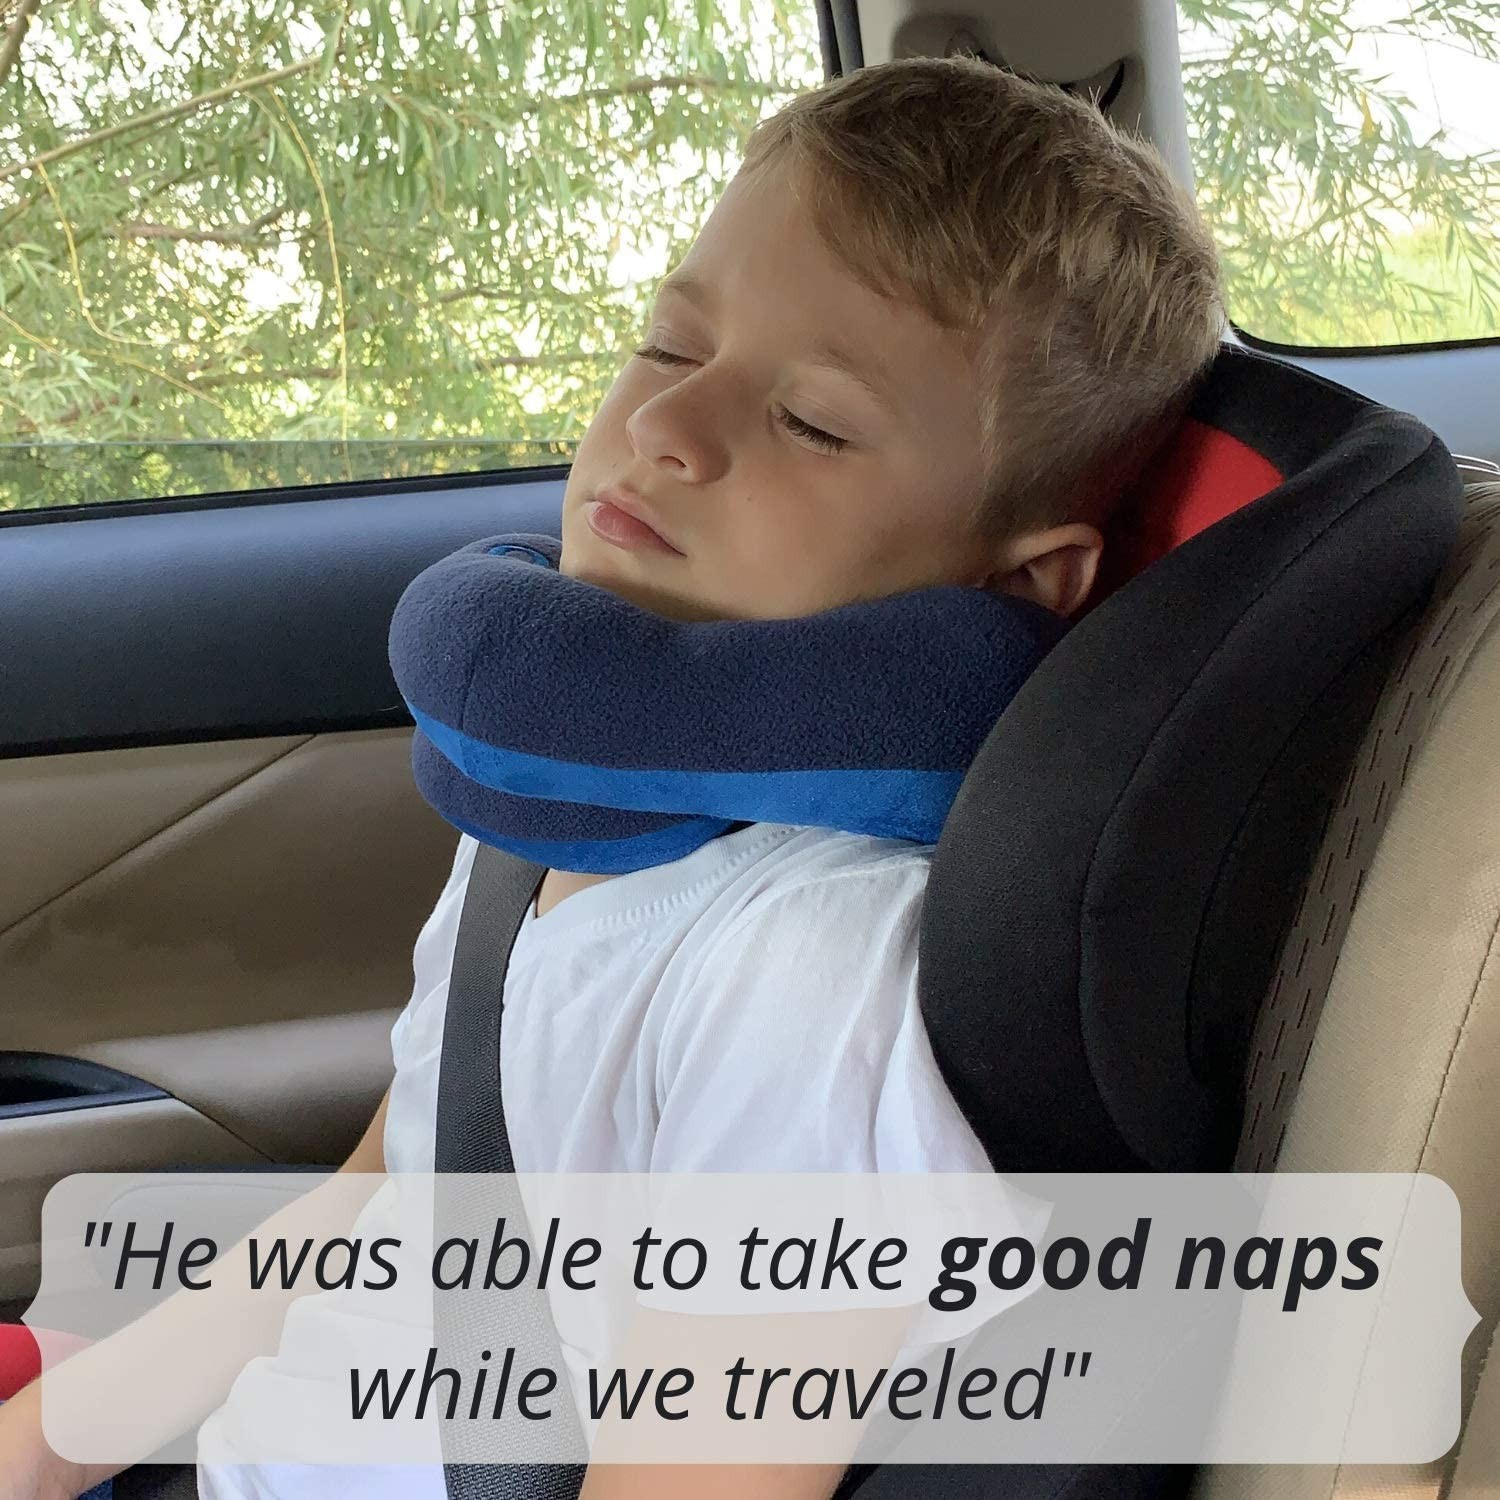 Kids Travel Neck Pillow Head Stops The Head from Falling Forward Manufacturers, Kids Travel Neck Pillow Head Stops The Head from Falling Forward Factory, Supply Kids Travel Neck Pillow Head Stops The Head from Falling Forward